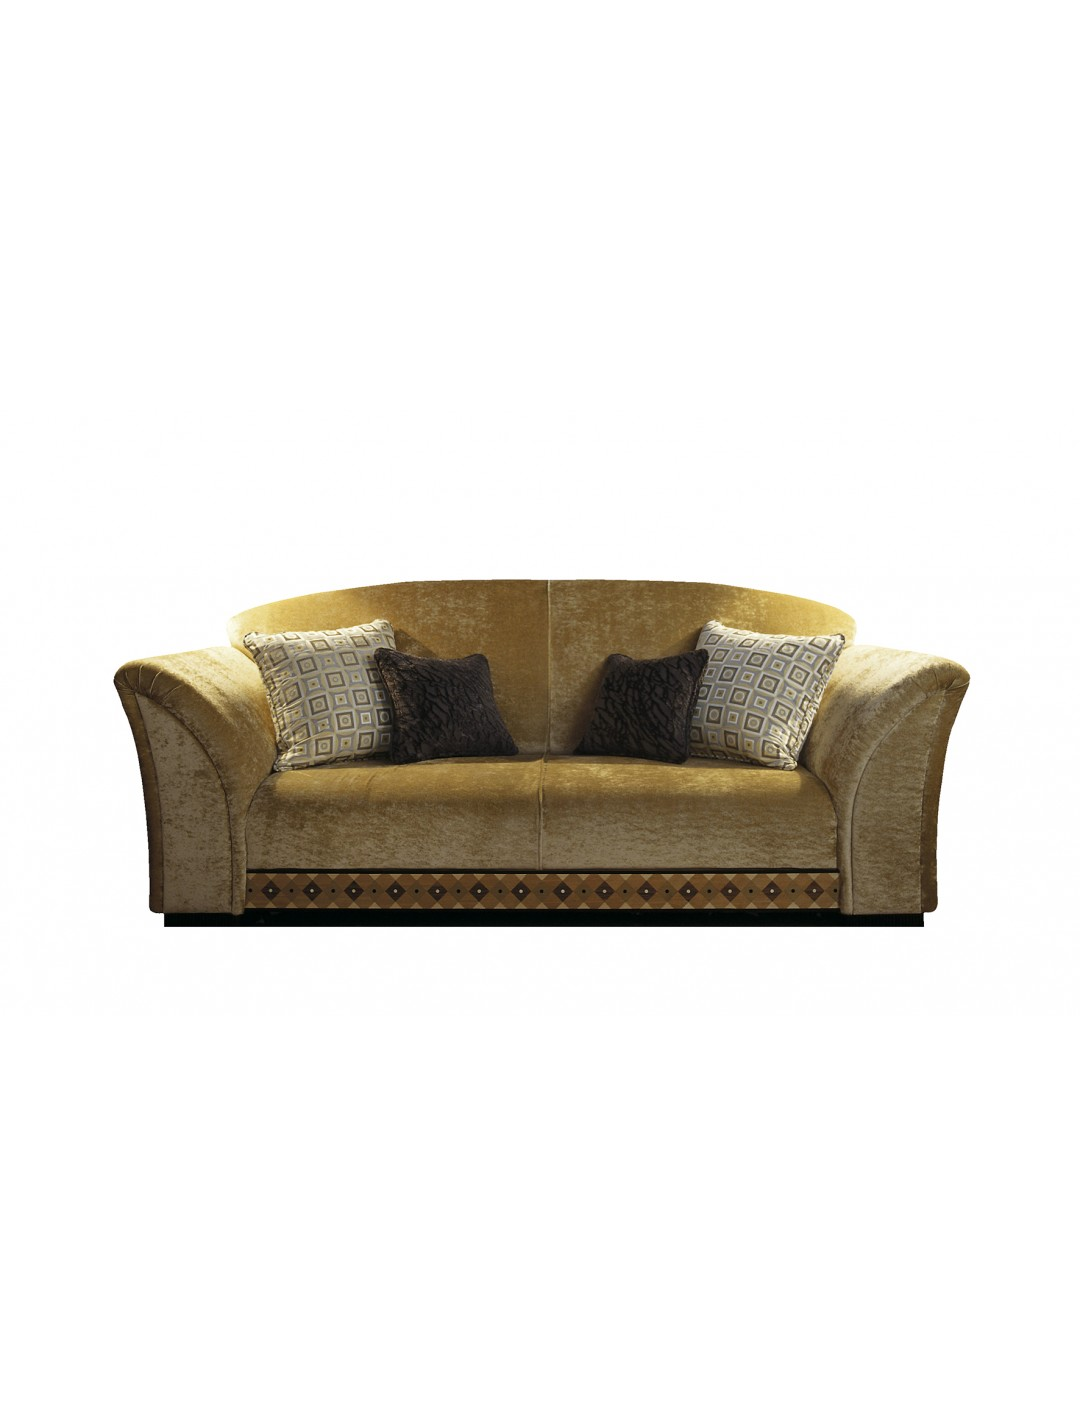 MADRID 3-SEATER SOFA, TWO 60*60 AND TWO 45*45 CM CUSHIONS INCLUDED, C.O.M.